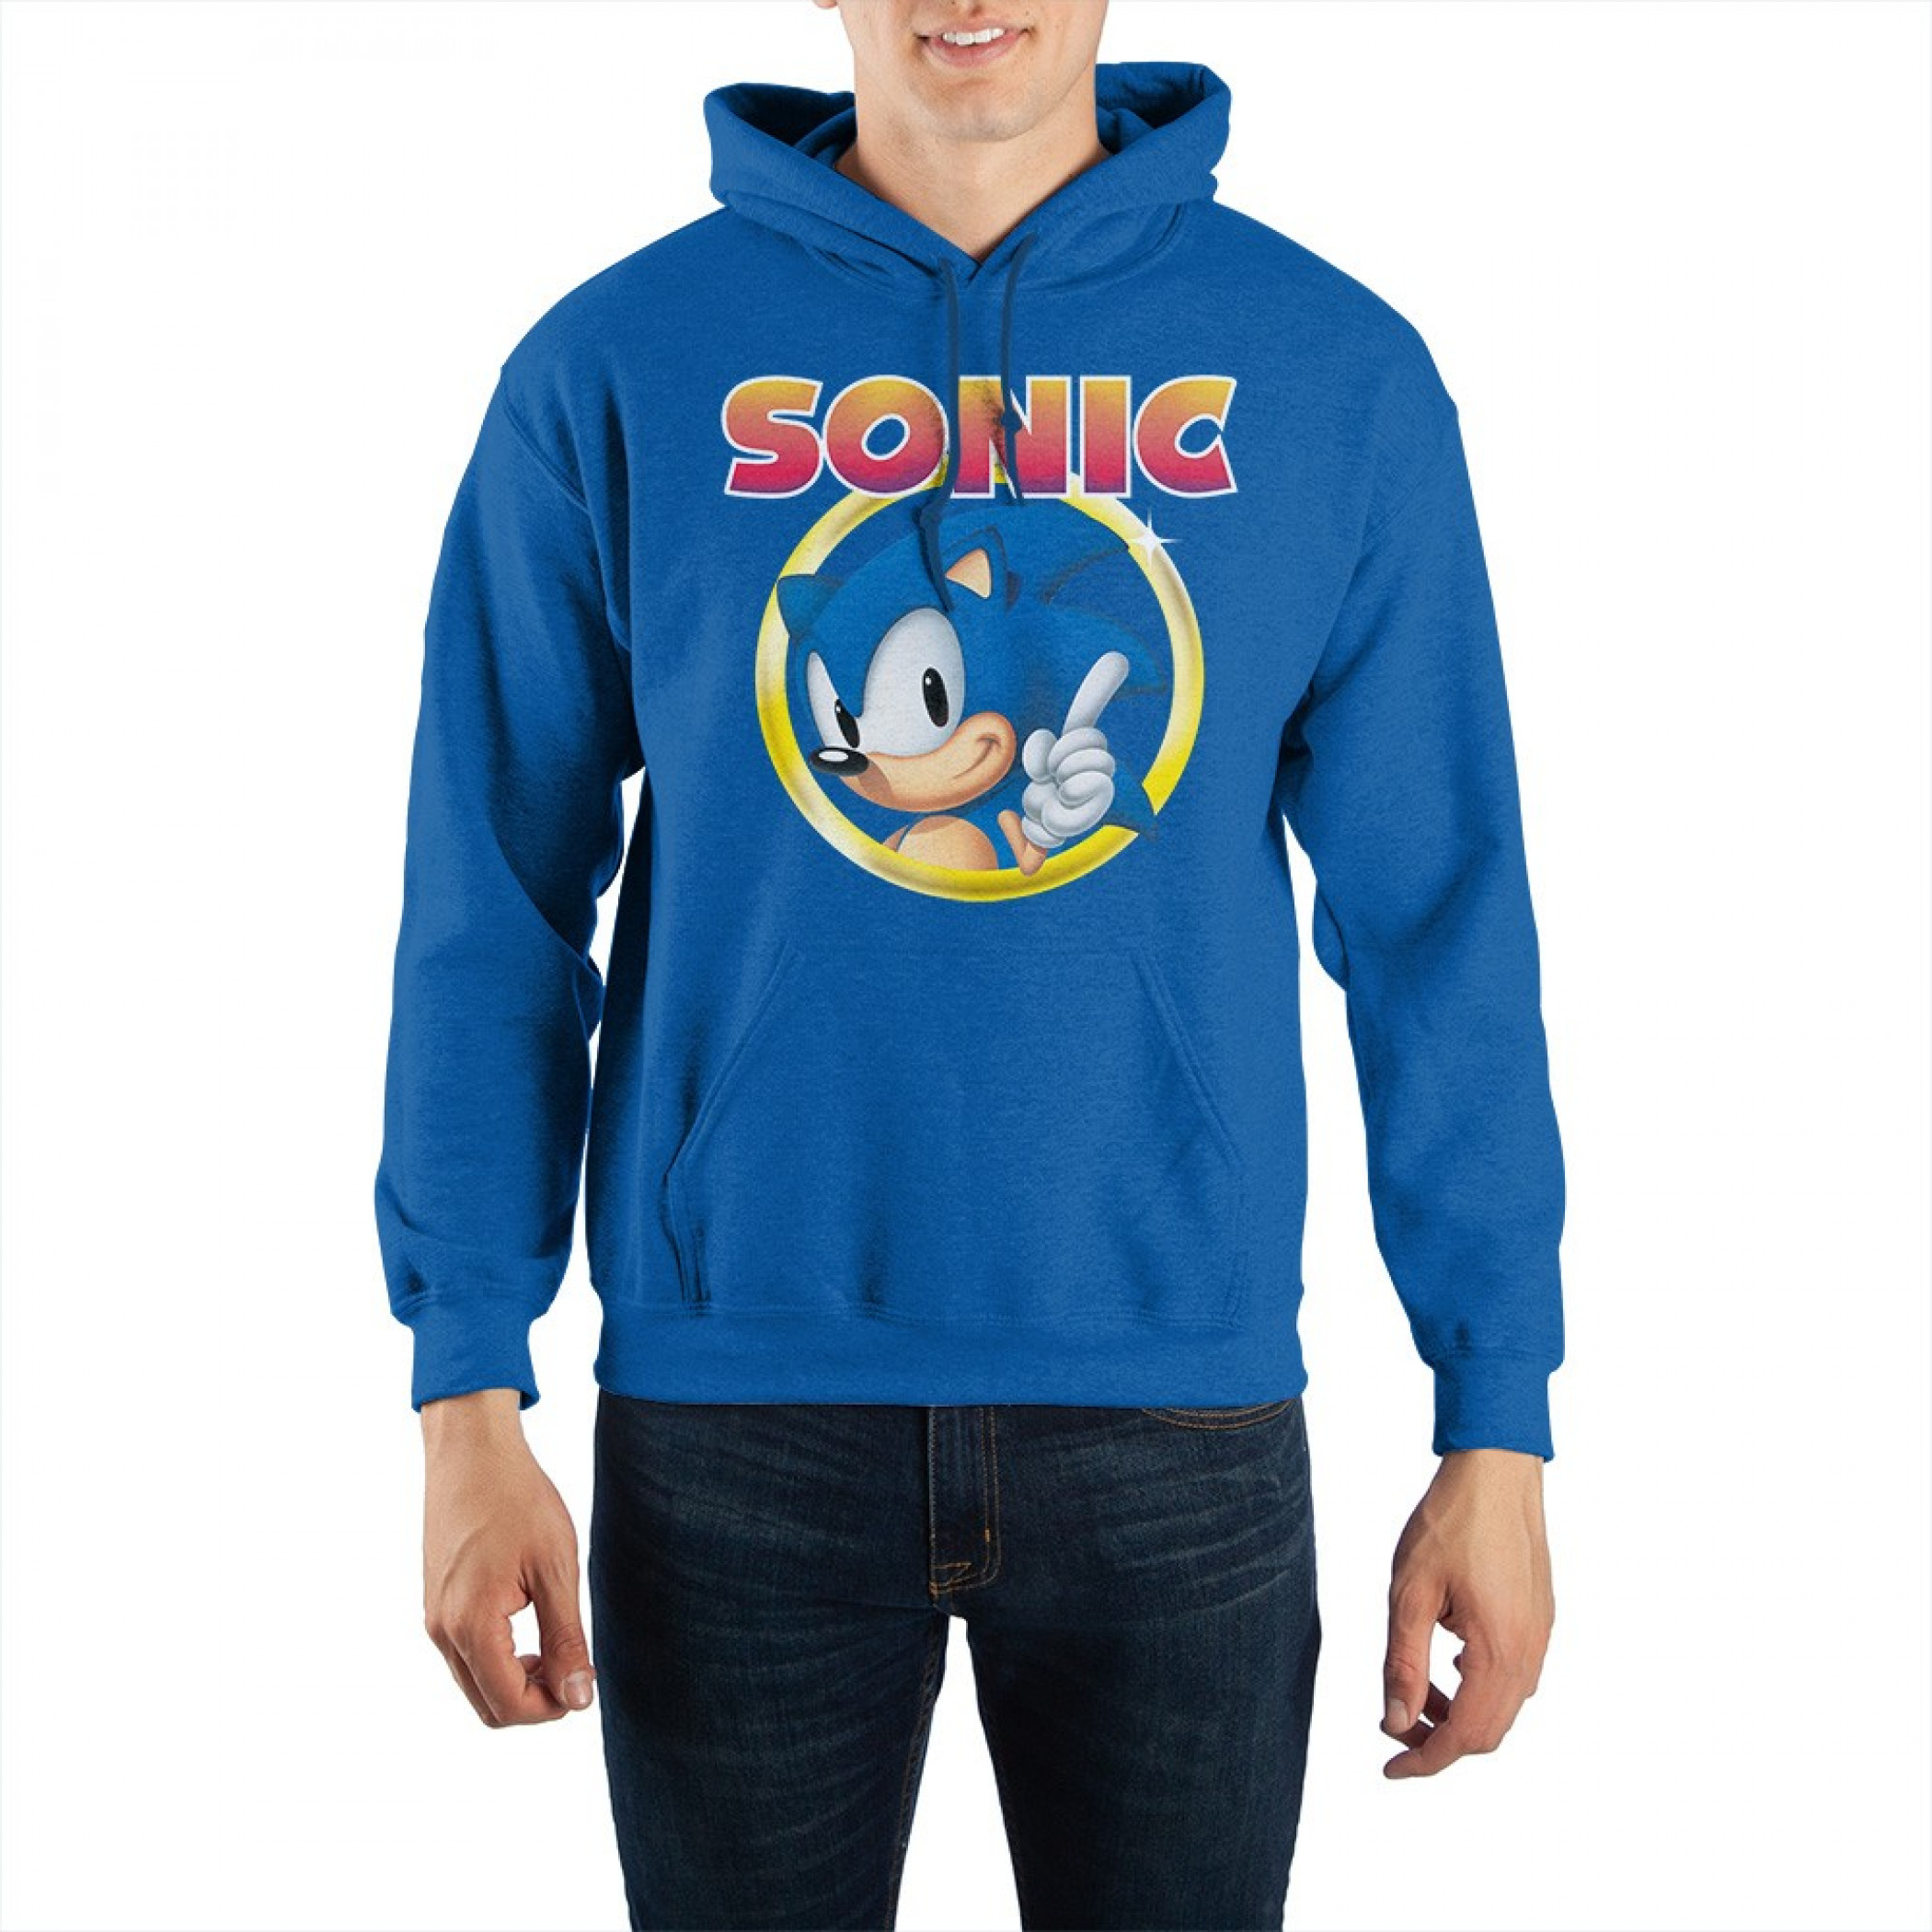 Sonic the Hedgehog Gold Ring Unisex Hoodie